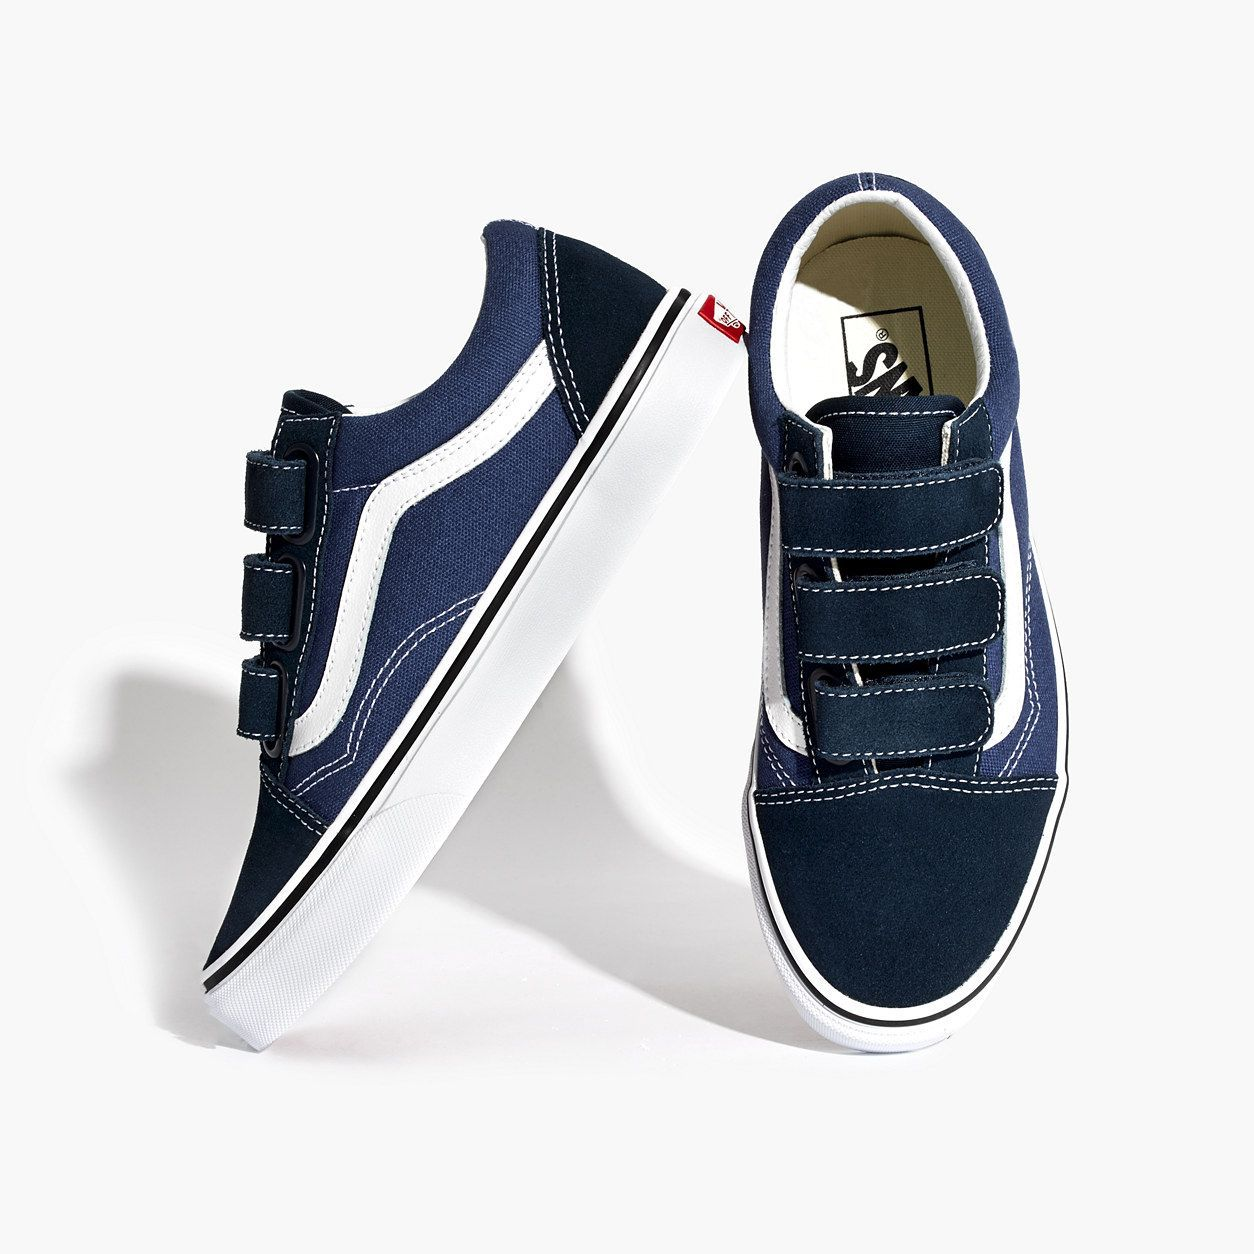 188a6fa92b Madewell Womens Vans Unisex Old Skool Velcro Sneakers (Size 7 M